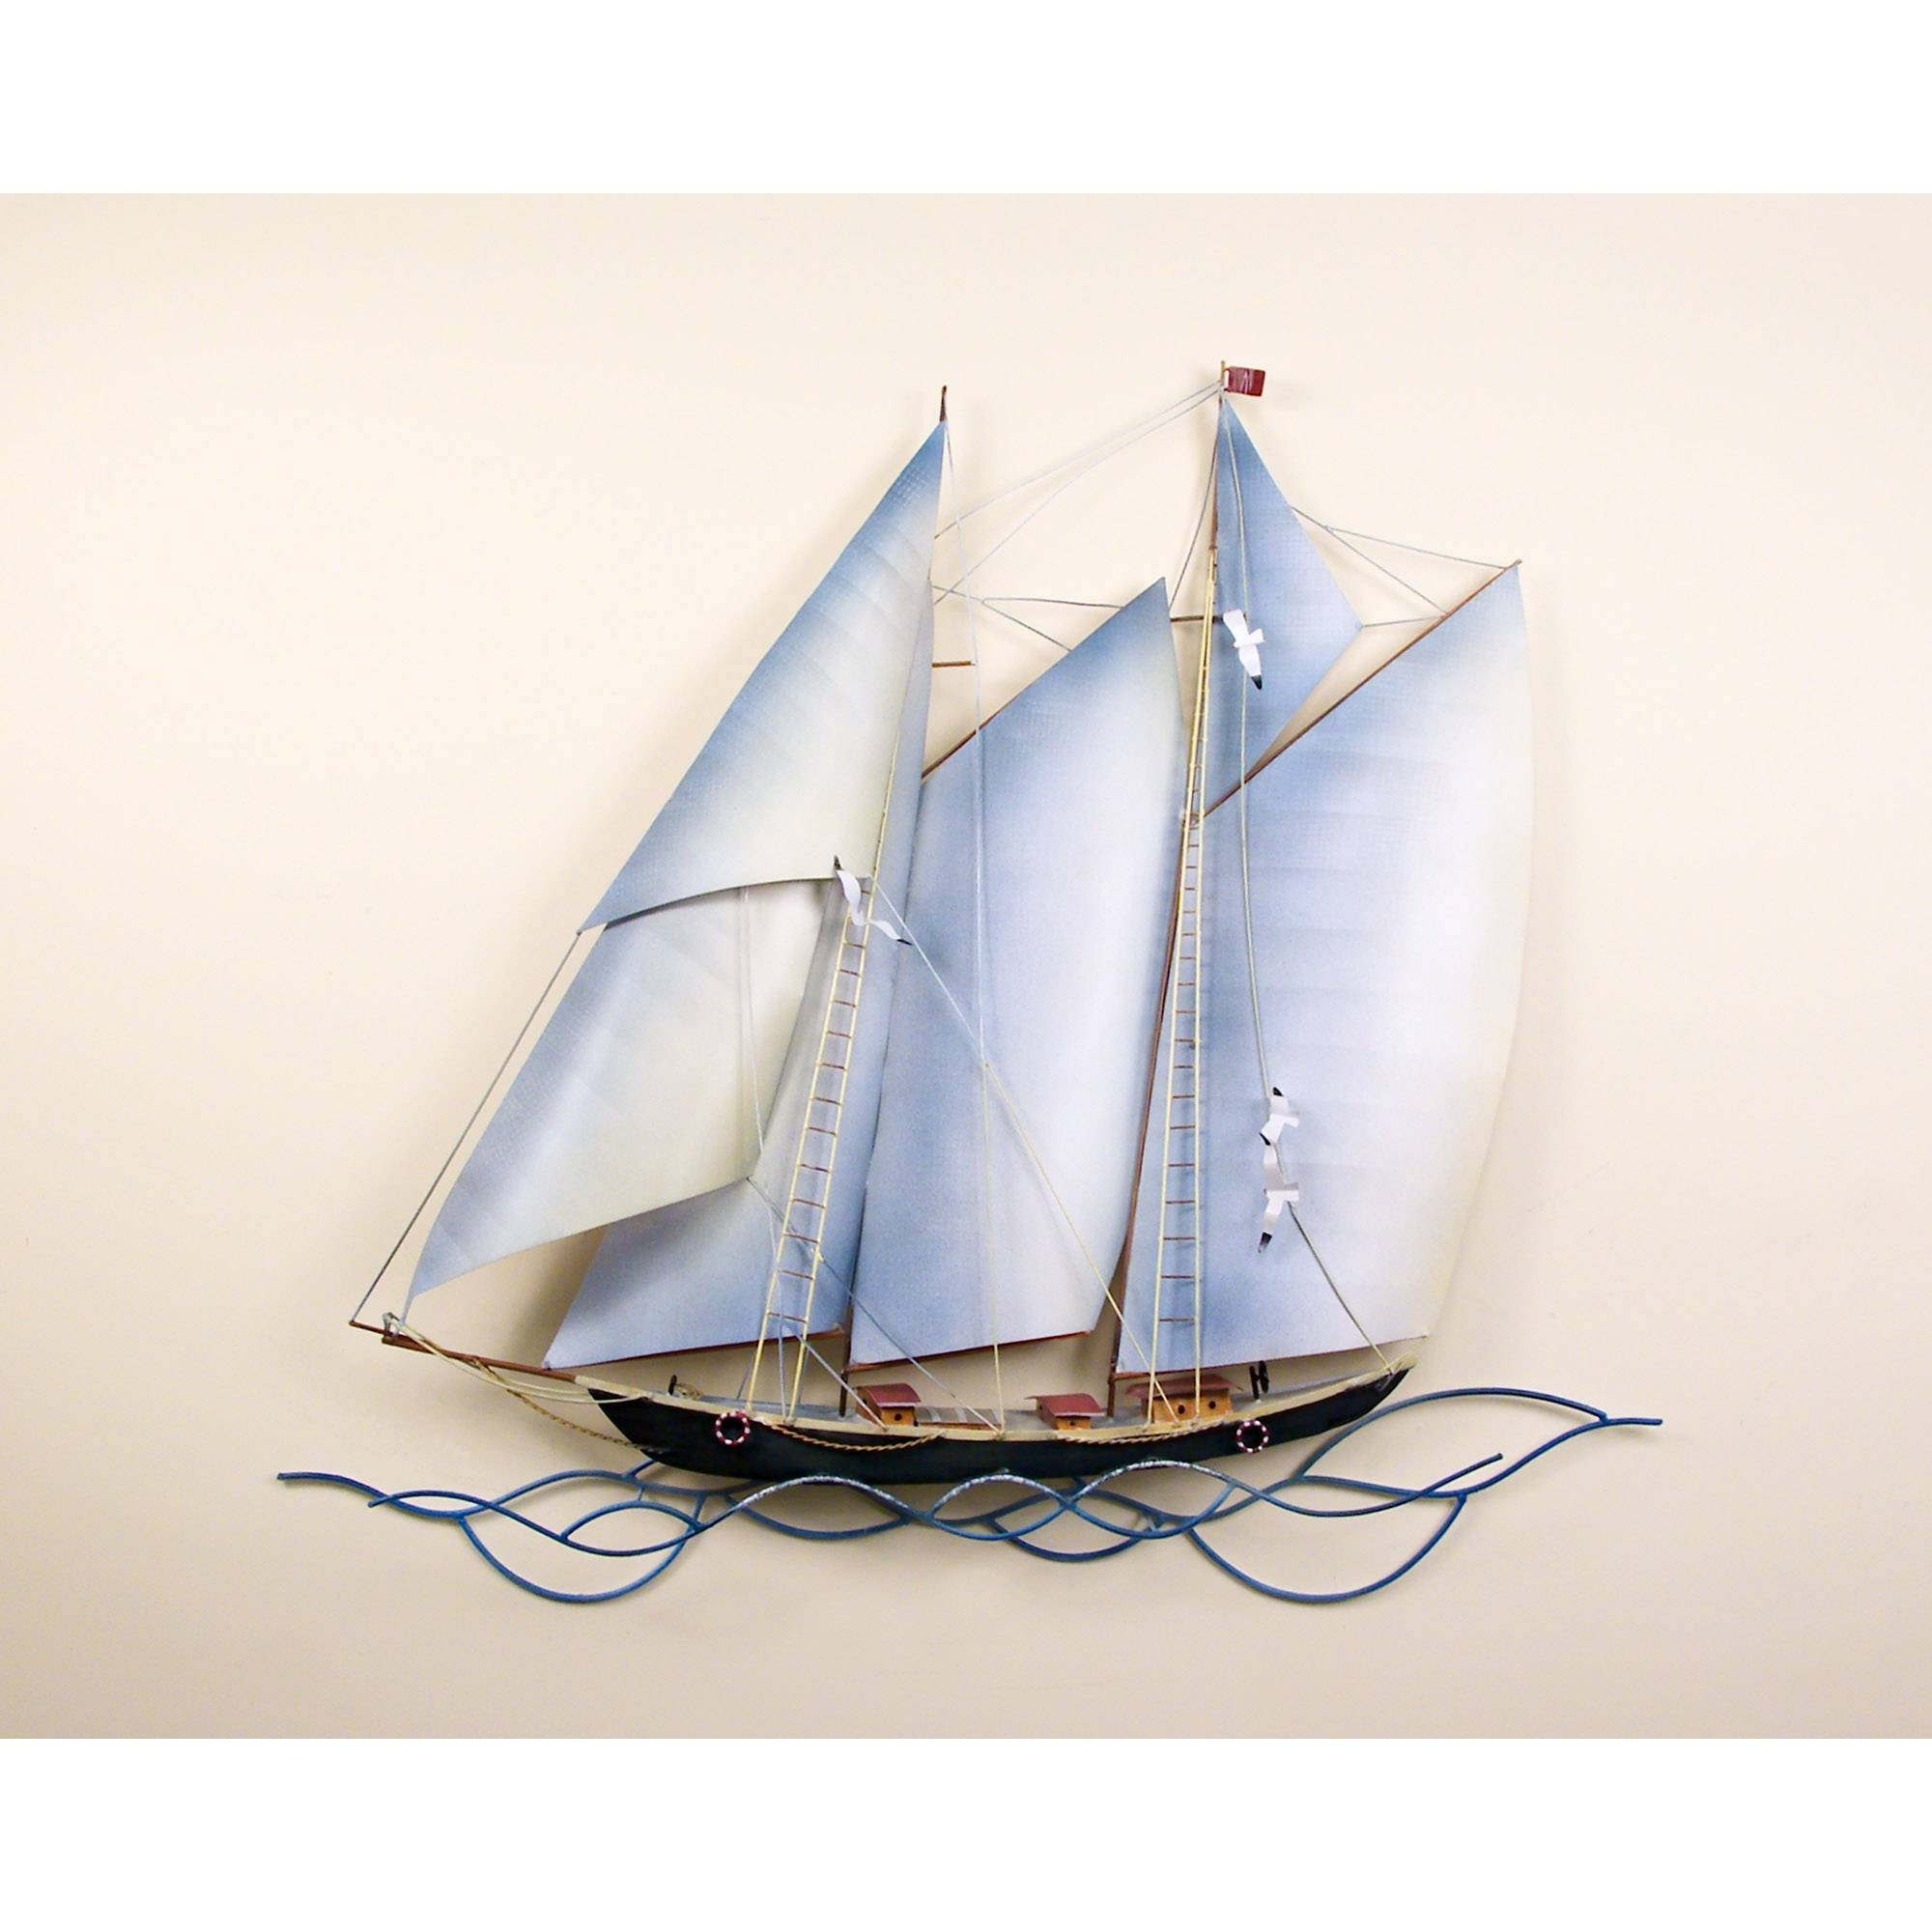 Schooner Under Sail, Single With Regard To Most Current Sailboat Metal Wall Art (View 13 of 30)